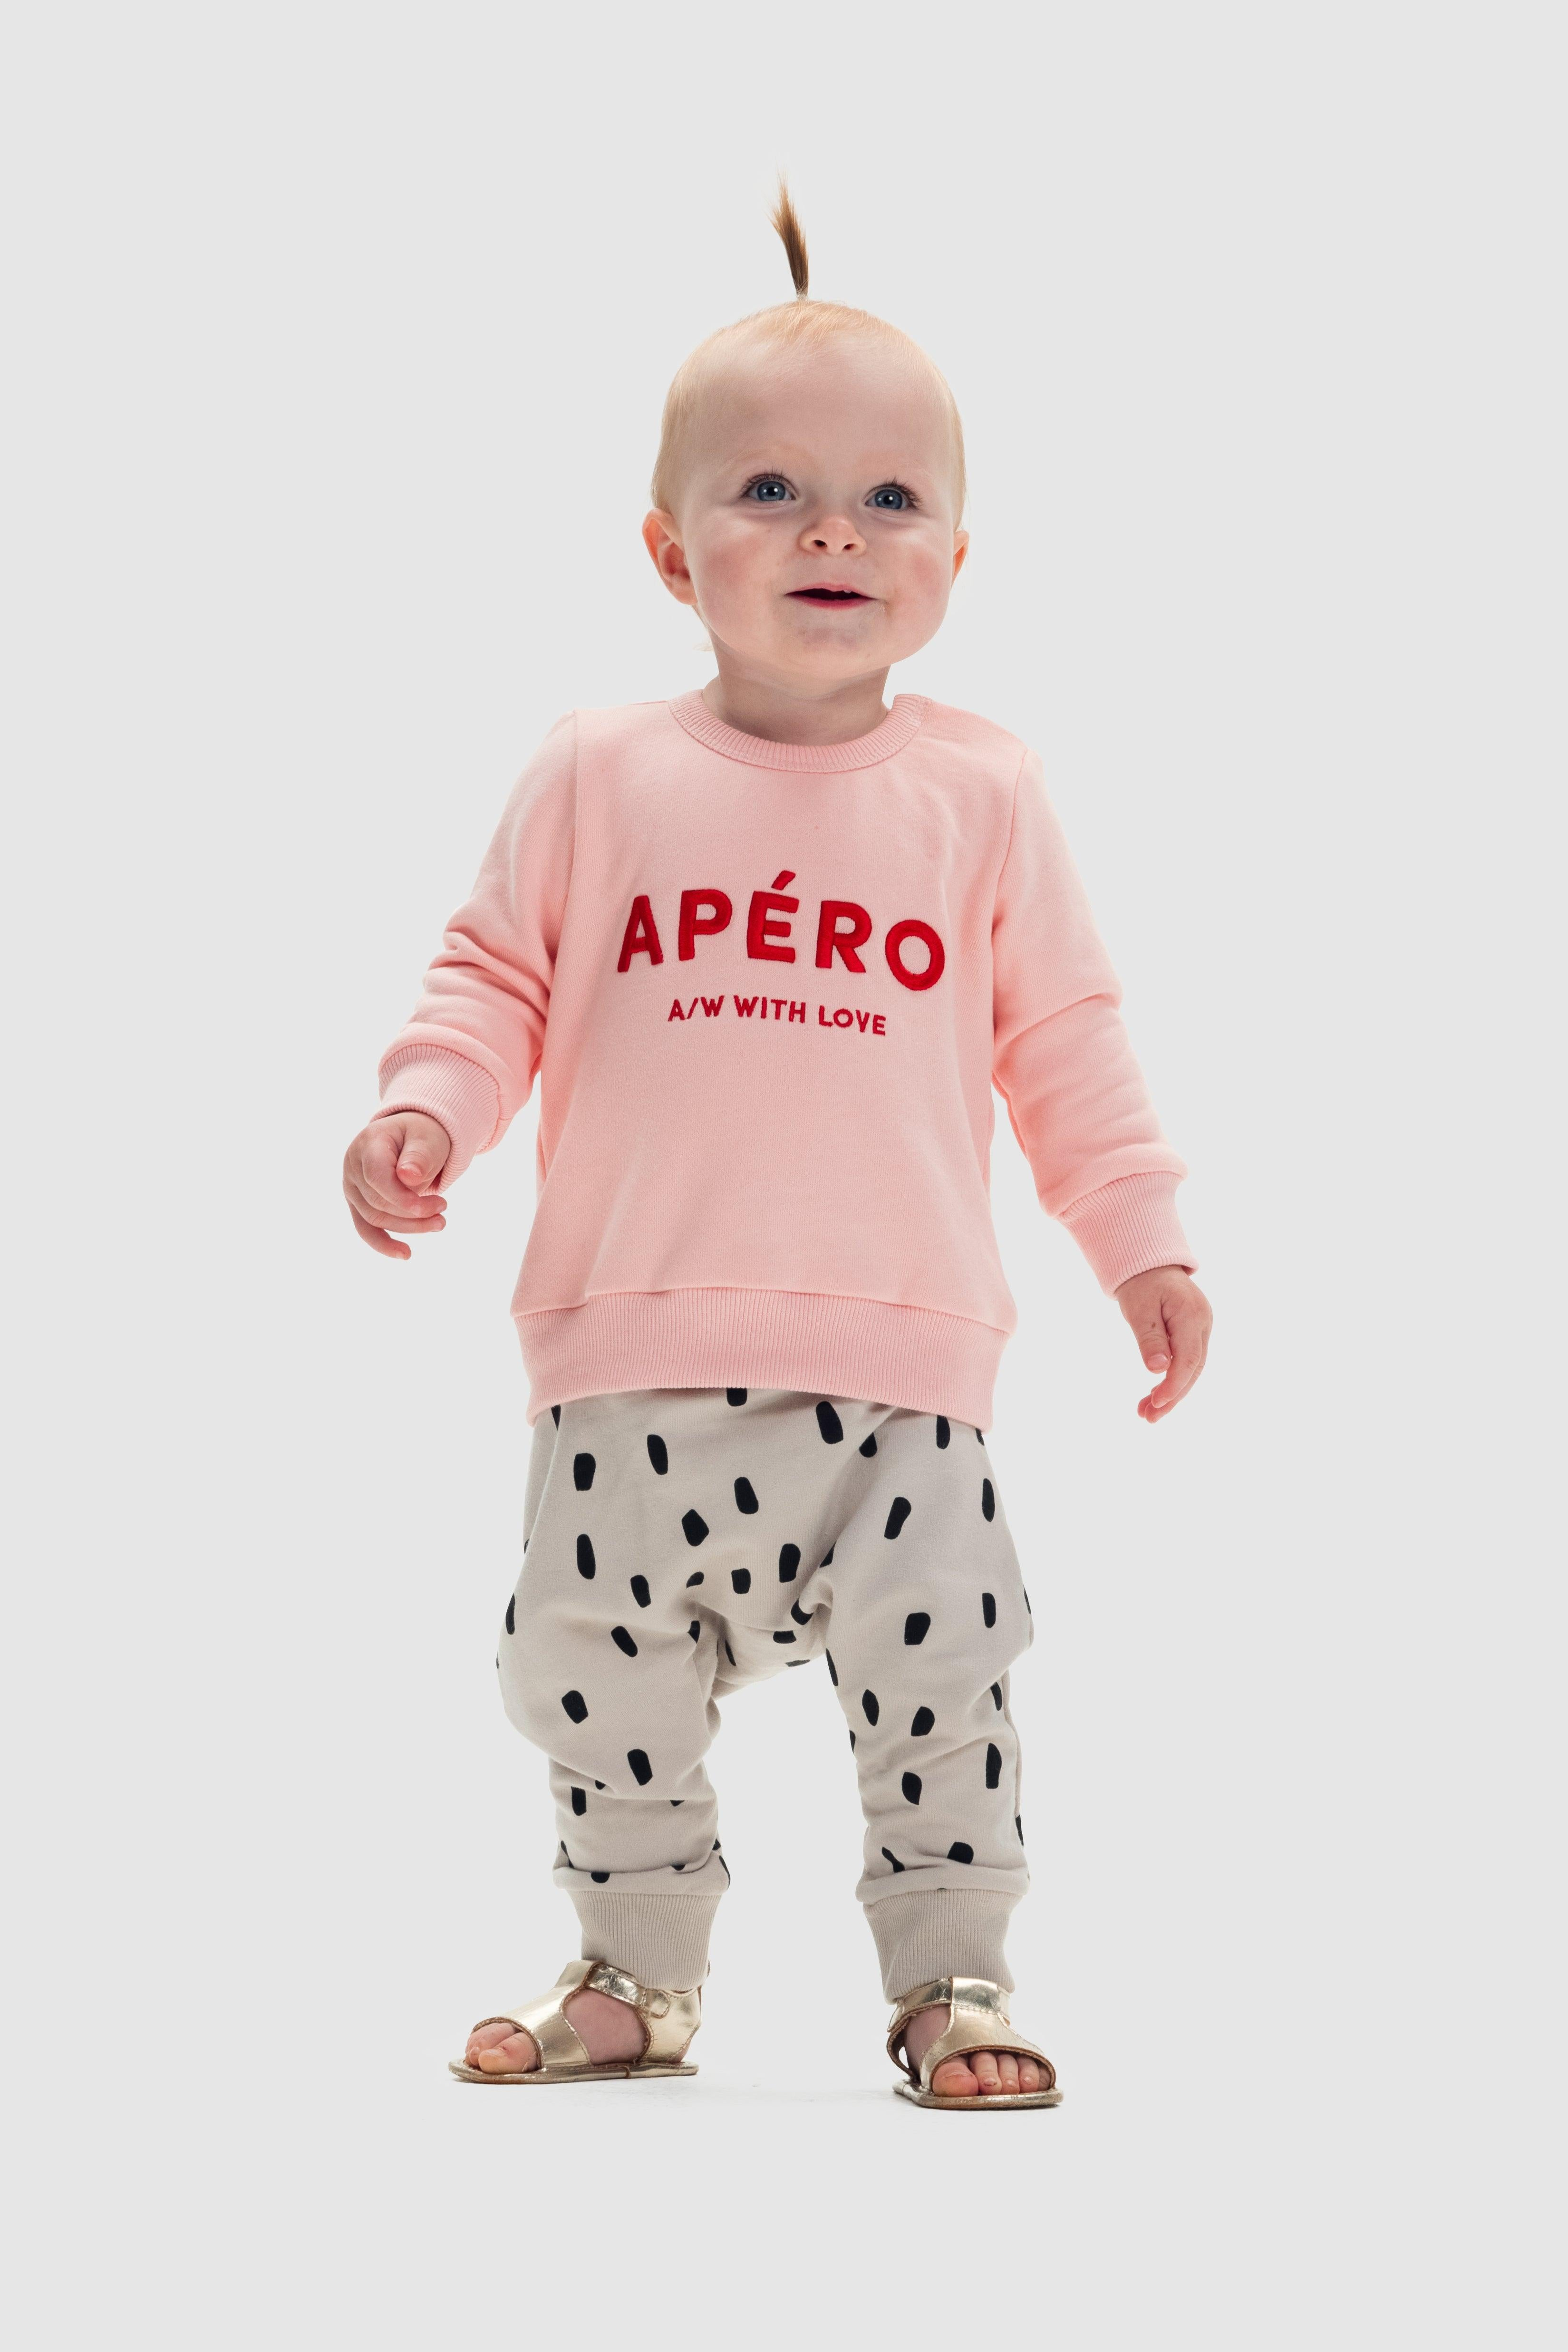 Little Apéro A/W with Love Embroidered Jumper - Baby Pink / Red